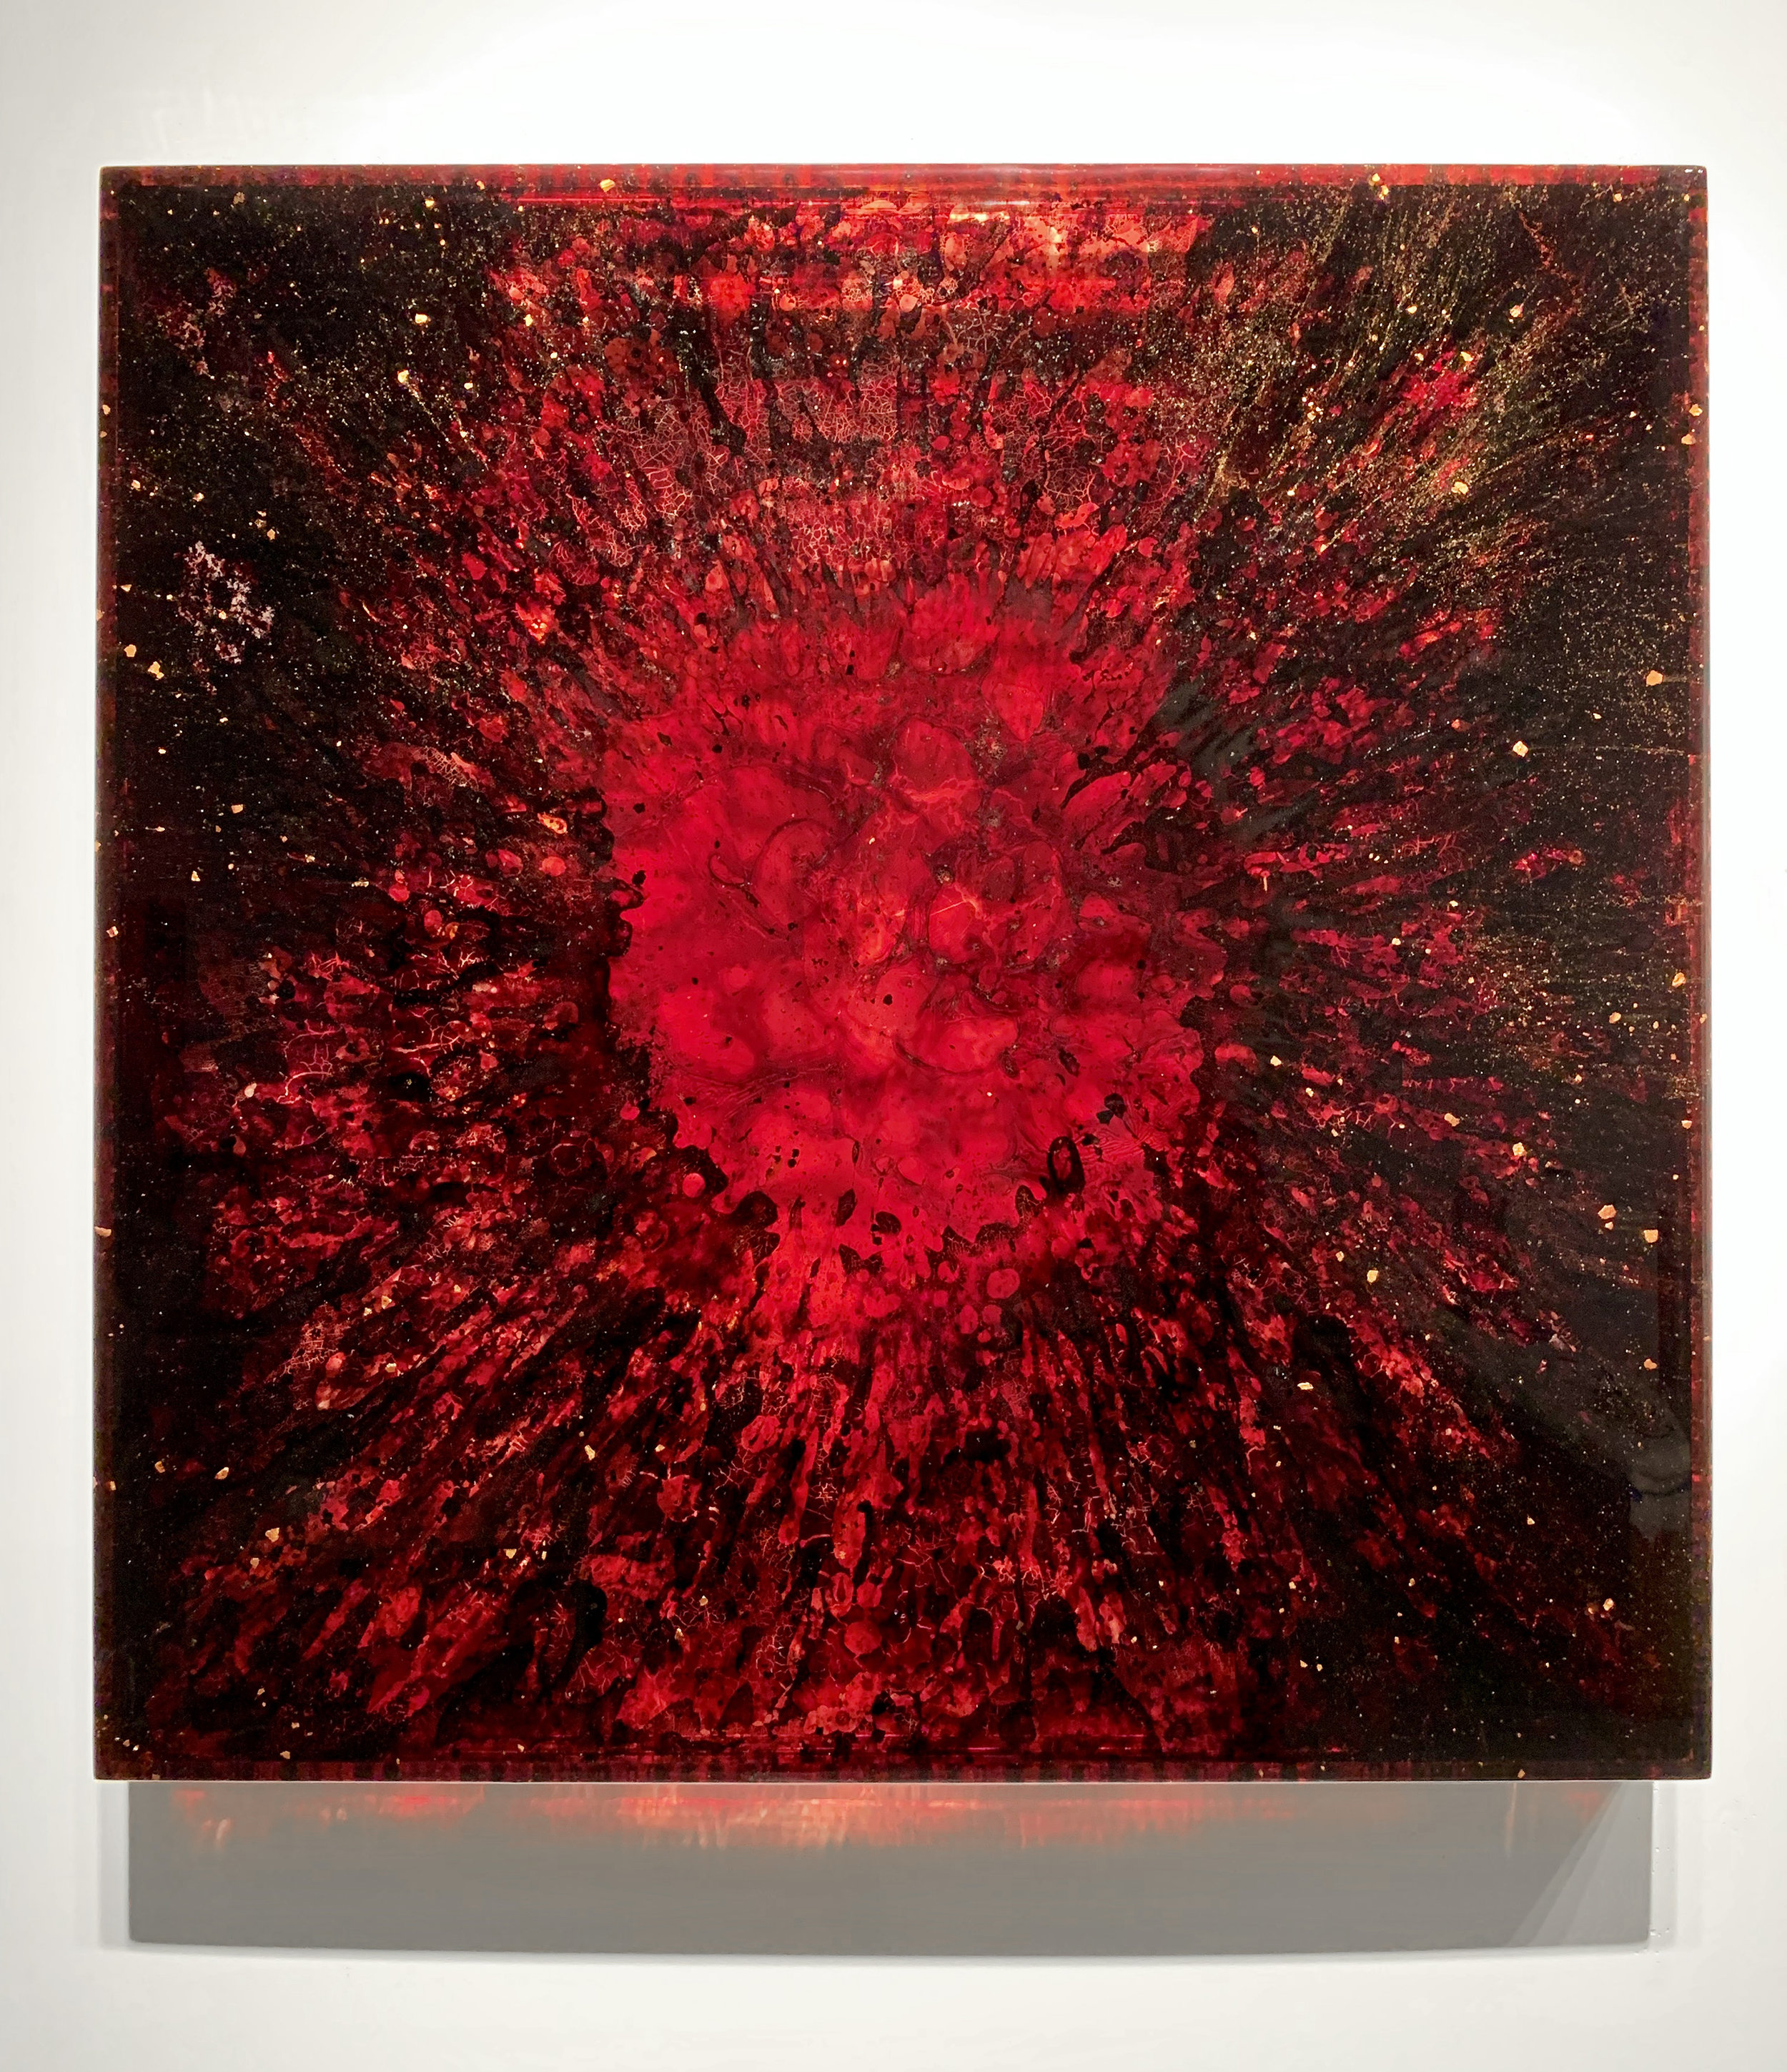 Jordan Eagles, URBC8, 2018. Blood, blood dust, copper, plexiglass, UV resin. 36x36x3 in